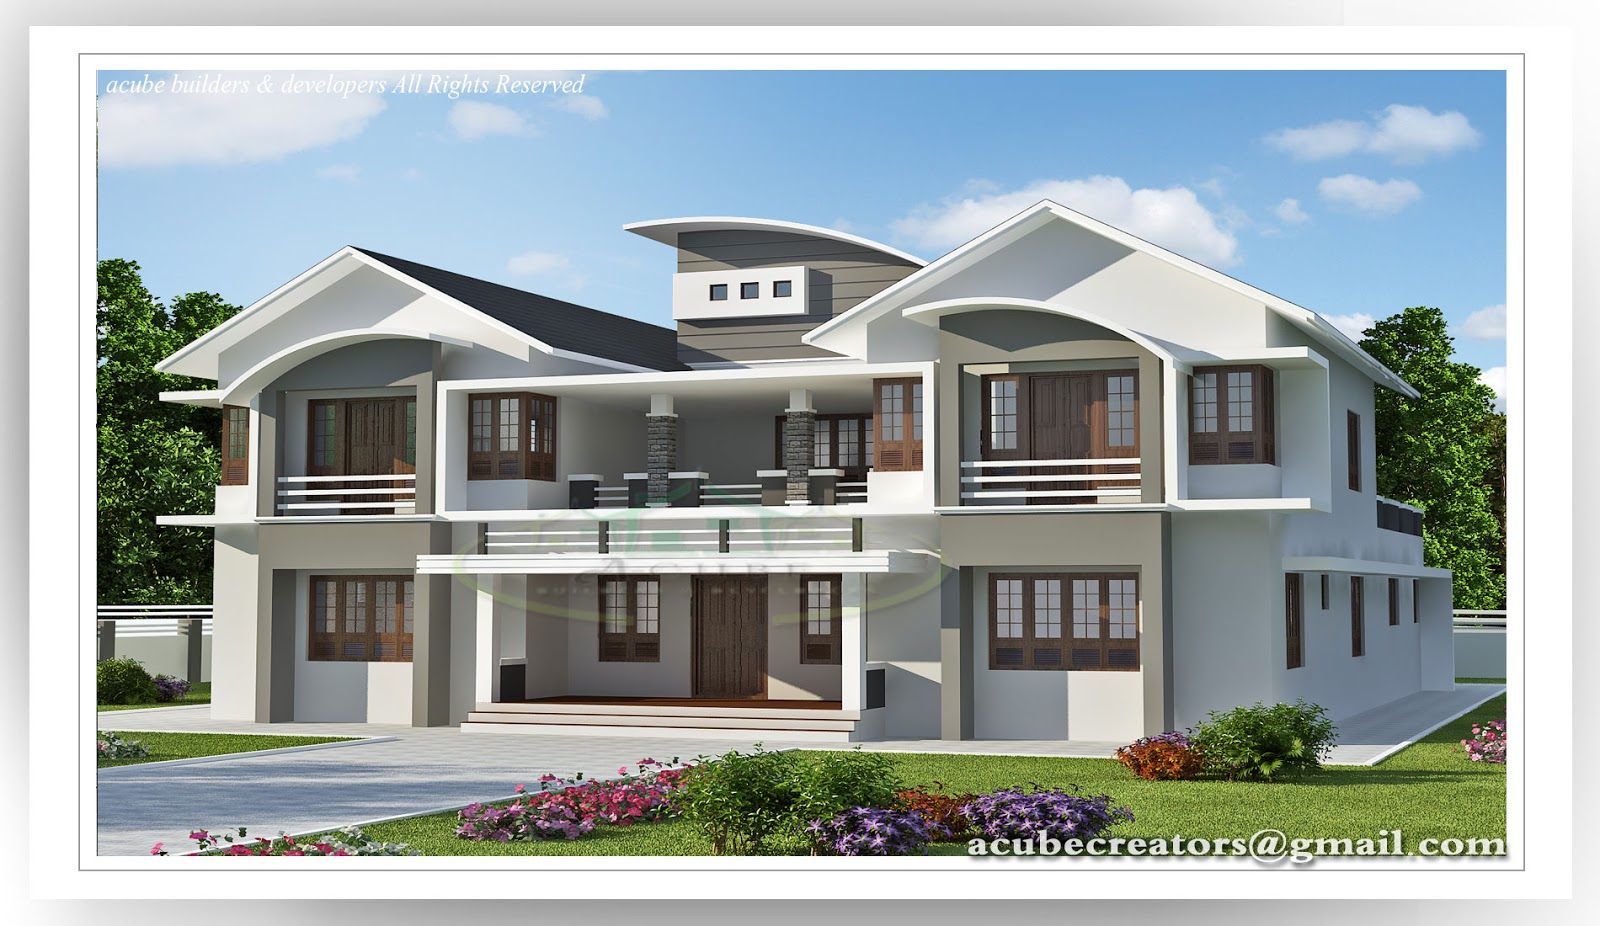 6 bedroom luxury villa design 5091 plan 149 for 6 bedroom house plans luxury